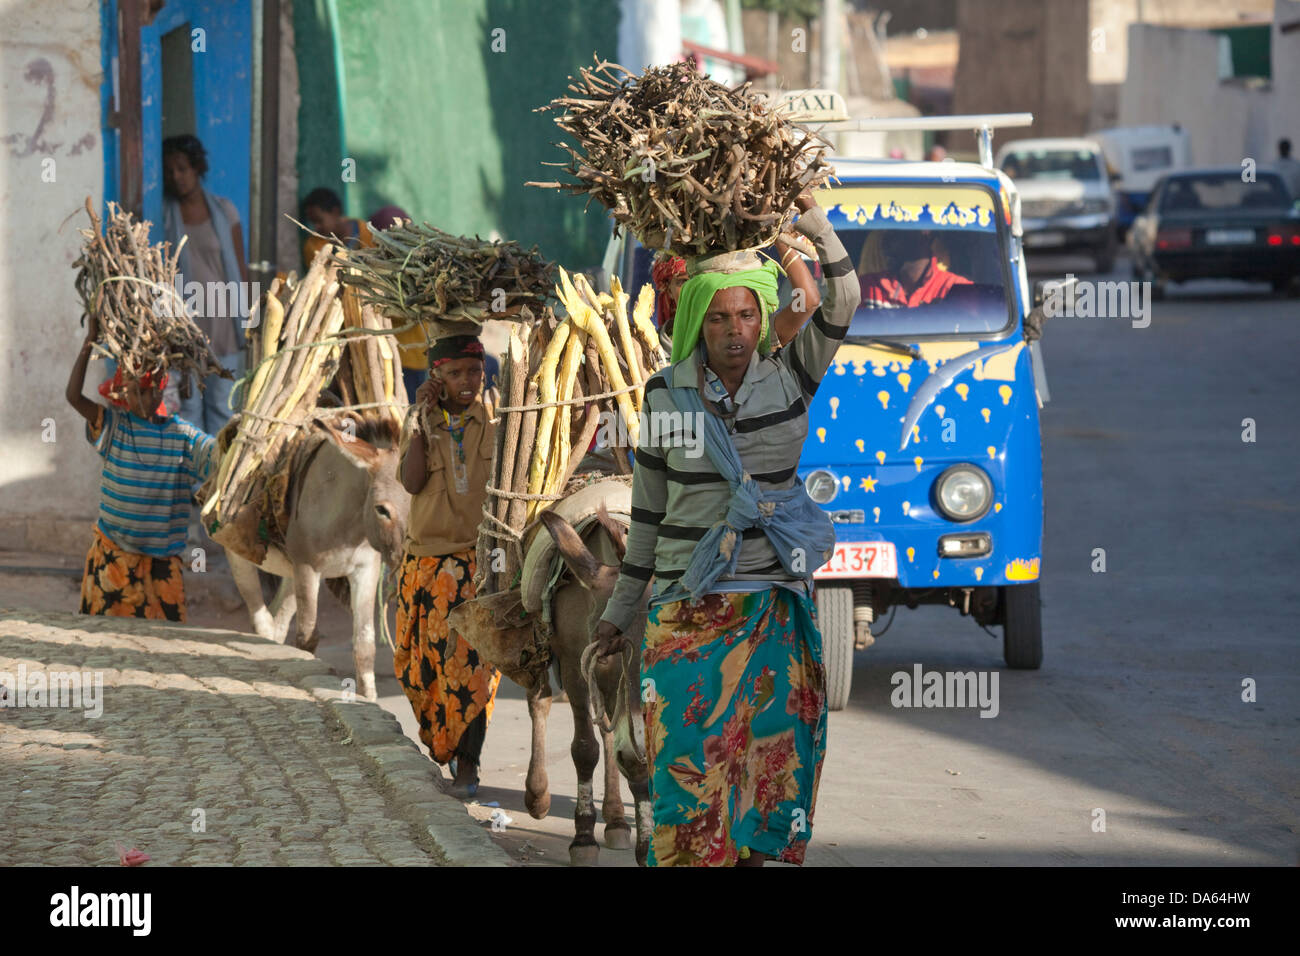 Wood, transport, Harar, Ethiopia, UNESCO, world cultural heritage, Africa, town, city, donkeys - Stock Image